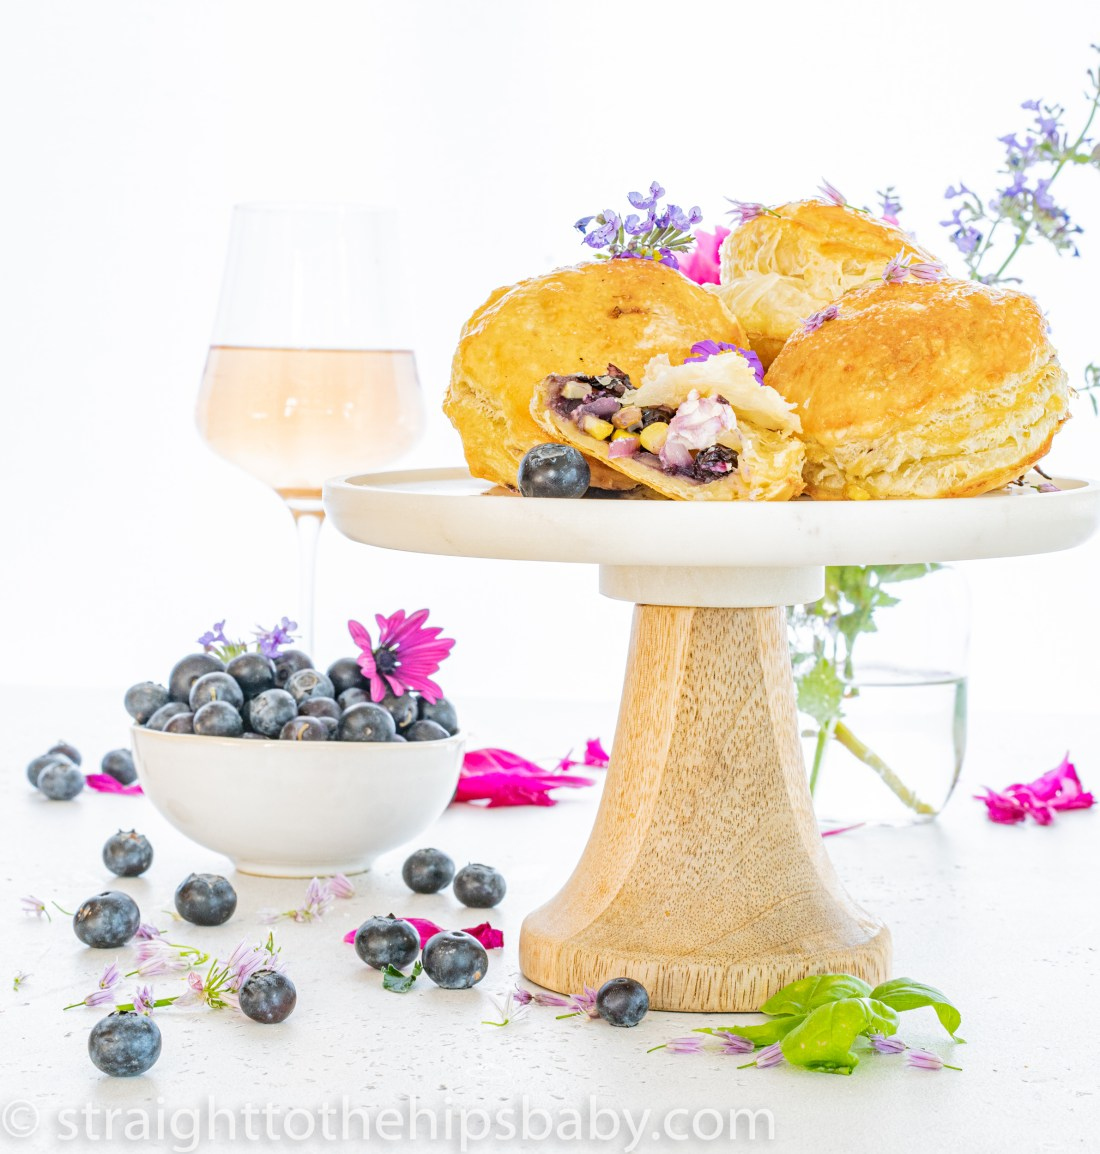 a standful of blueberry & Corn pastry bites with goat cheese